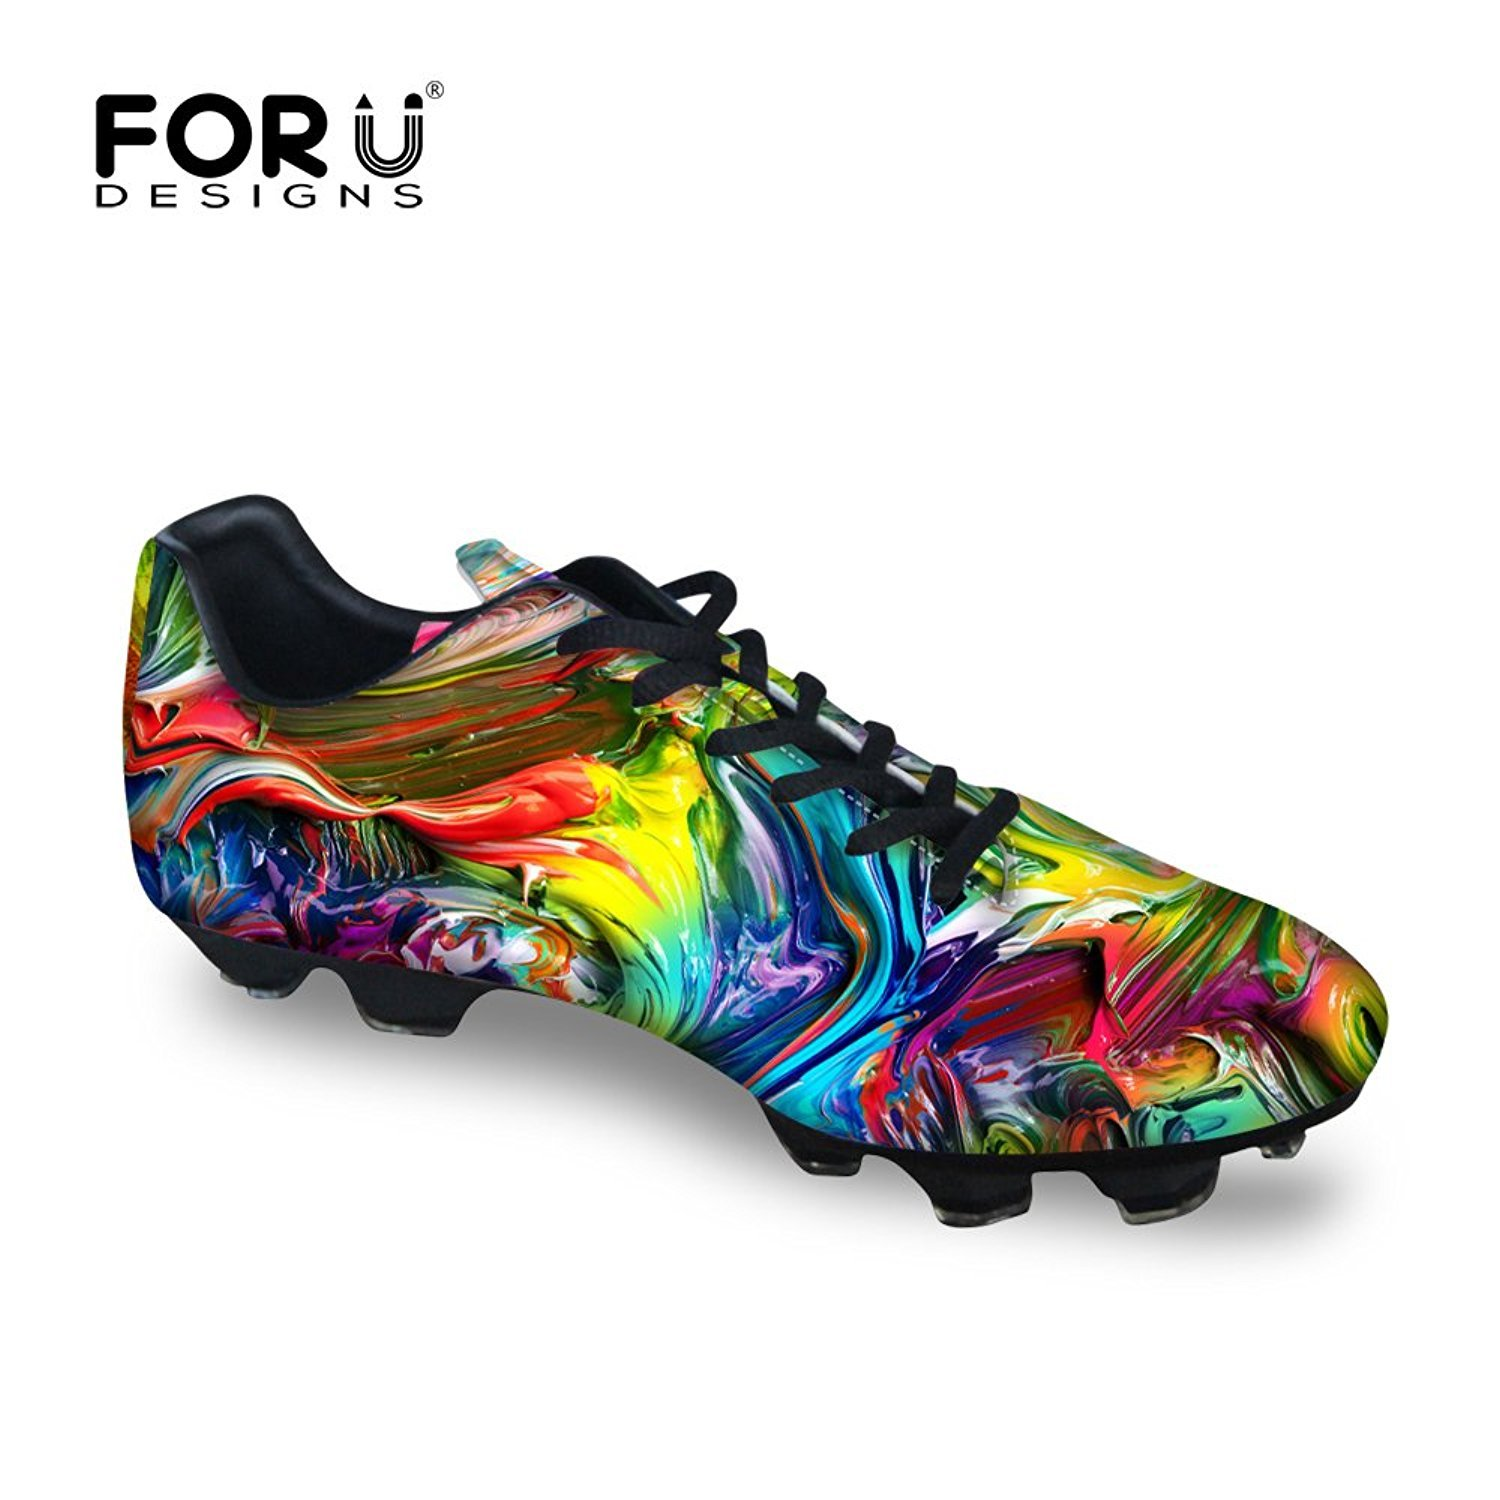 4e40dfe9b Buy FOR U DESIGNS Cool Coating Printed Men s Low Top Sport Shoes Fg Soccer  Cleats Online at Low Prices in India - Amazon.in